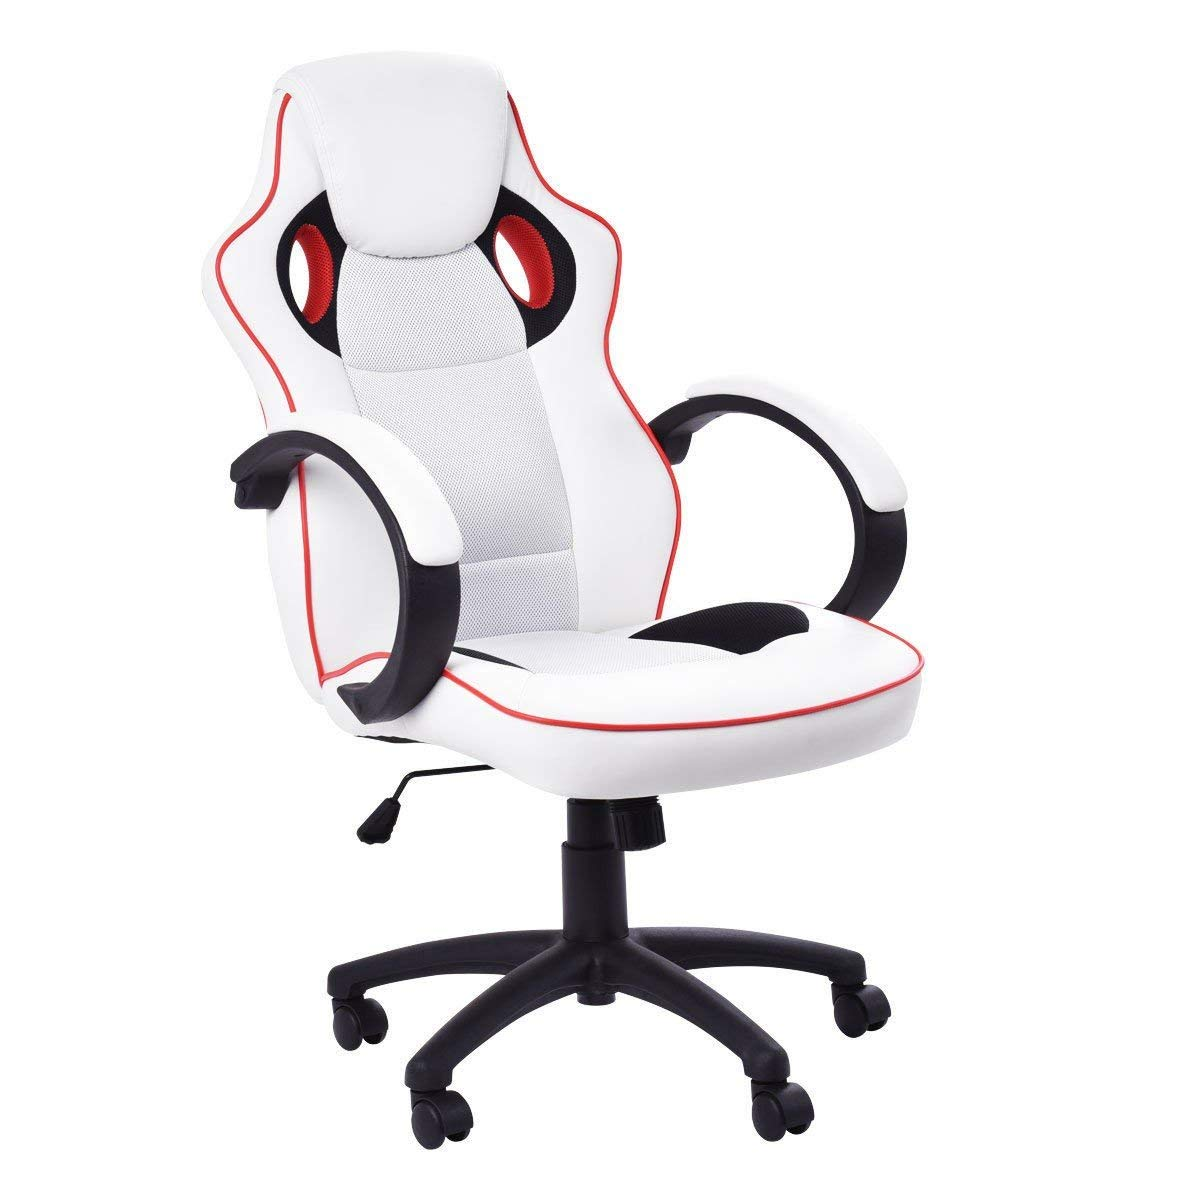 Svitlife White Executive High-Back Racing Style Office Chair Gaming Seat Desk Bucket Executive